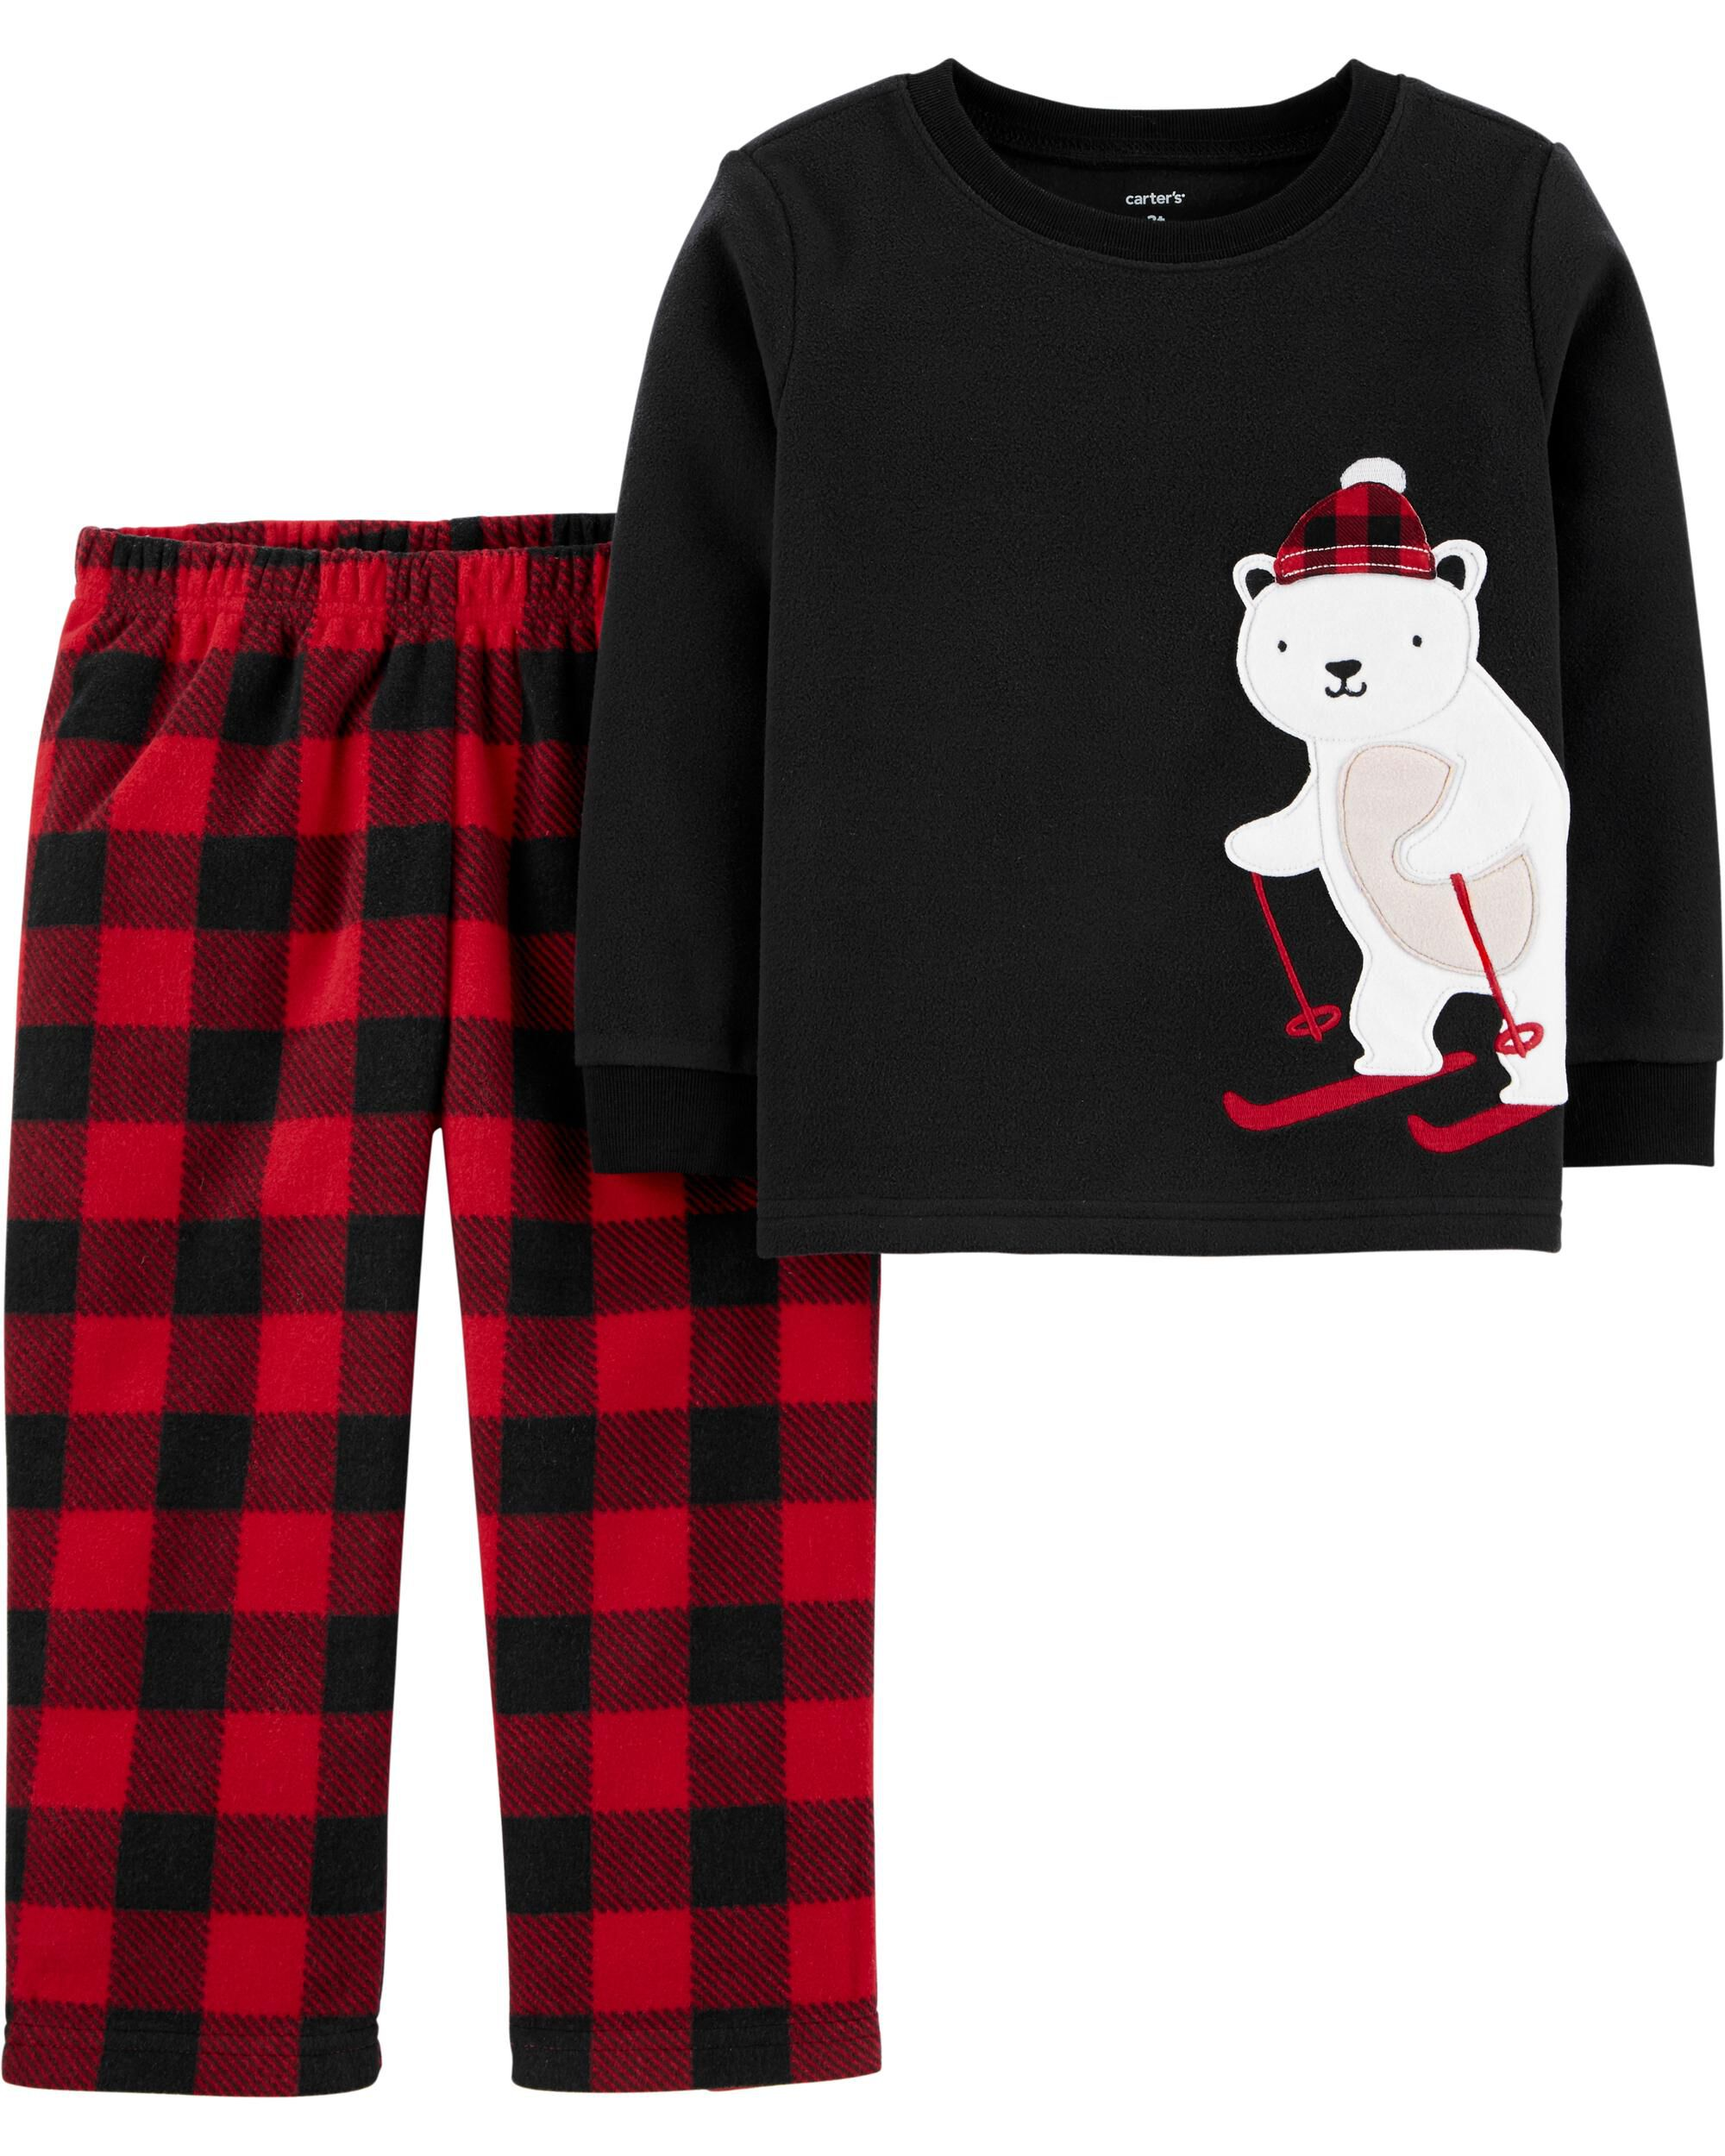 Boys 2 Piece Plaid Fleece Pj Set Size 6